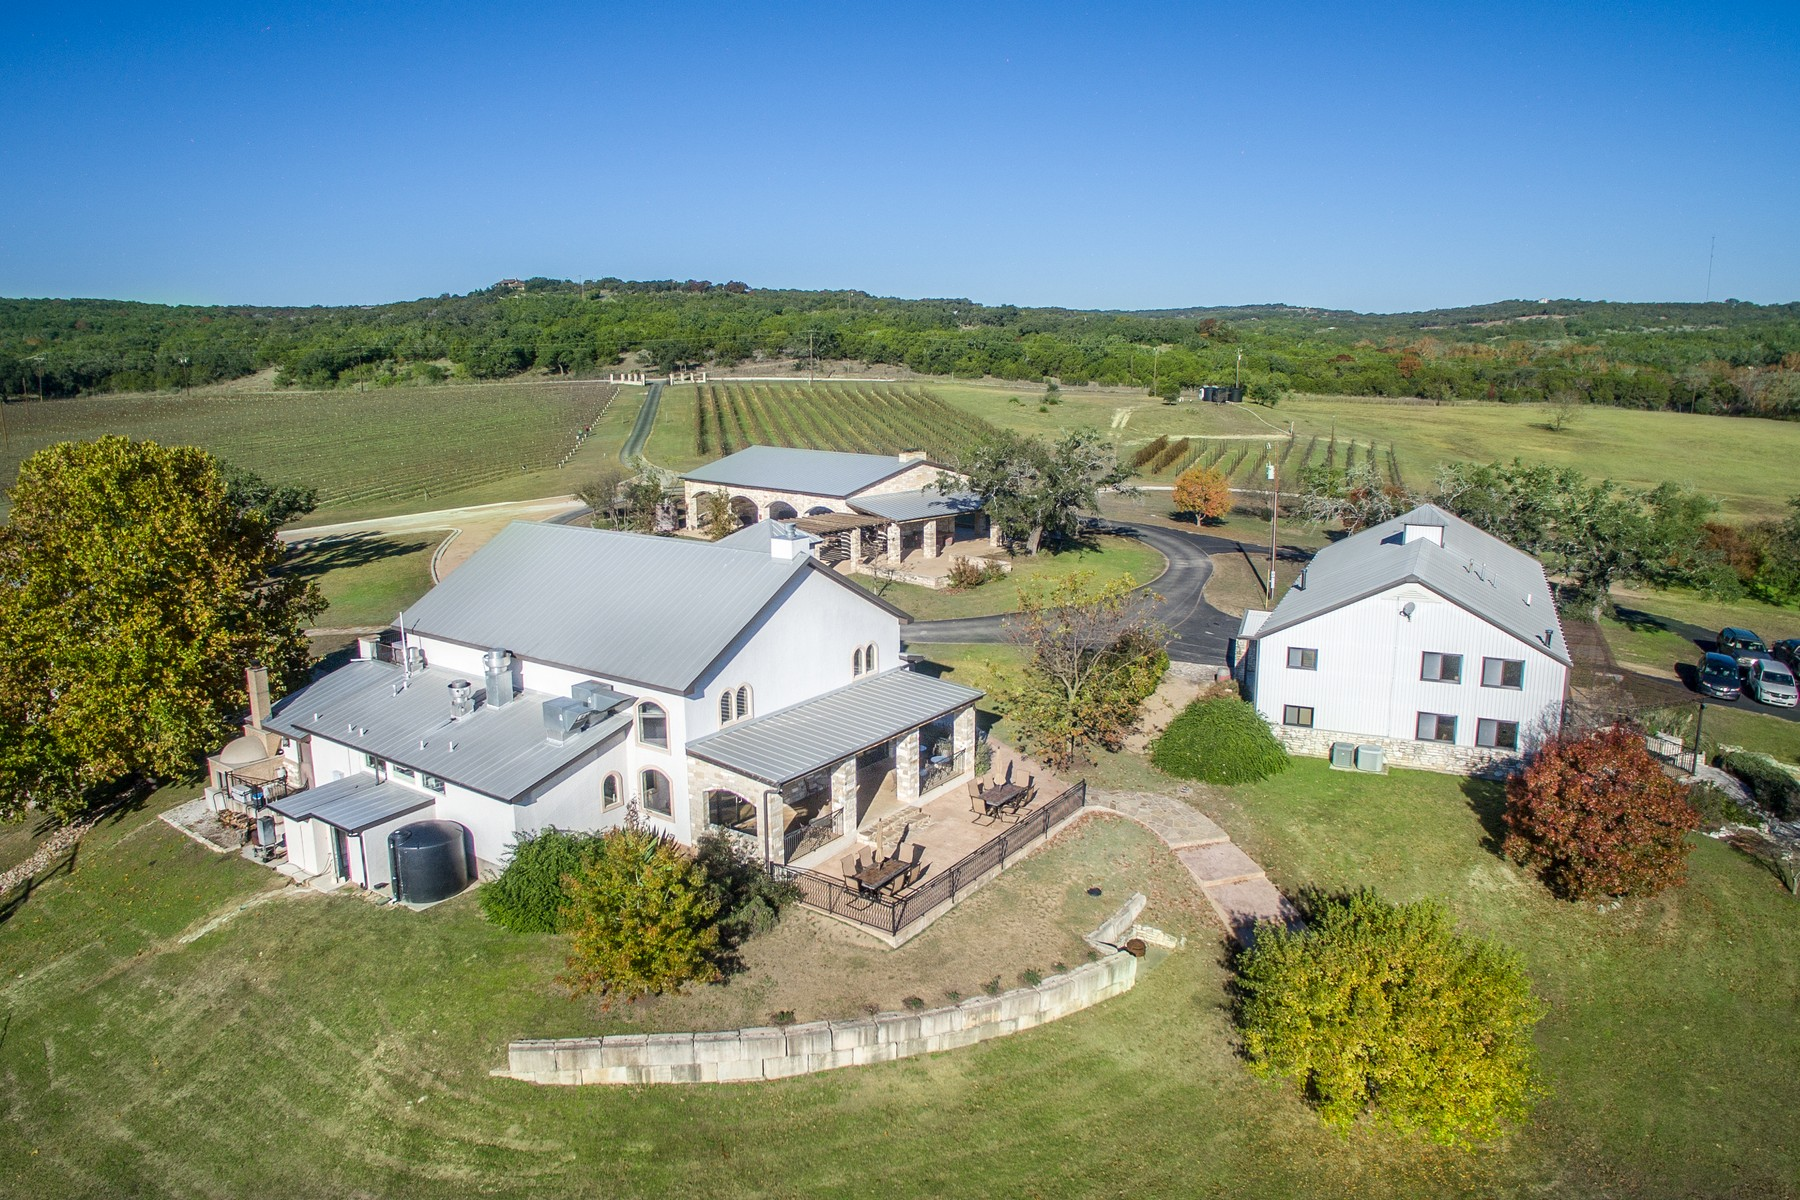 Winery for Sale at The Crown Jewel of Texas Wineries 24912 Singleton Bend East Rd Marble Falls, Texas 78654 United States